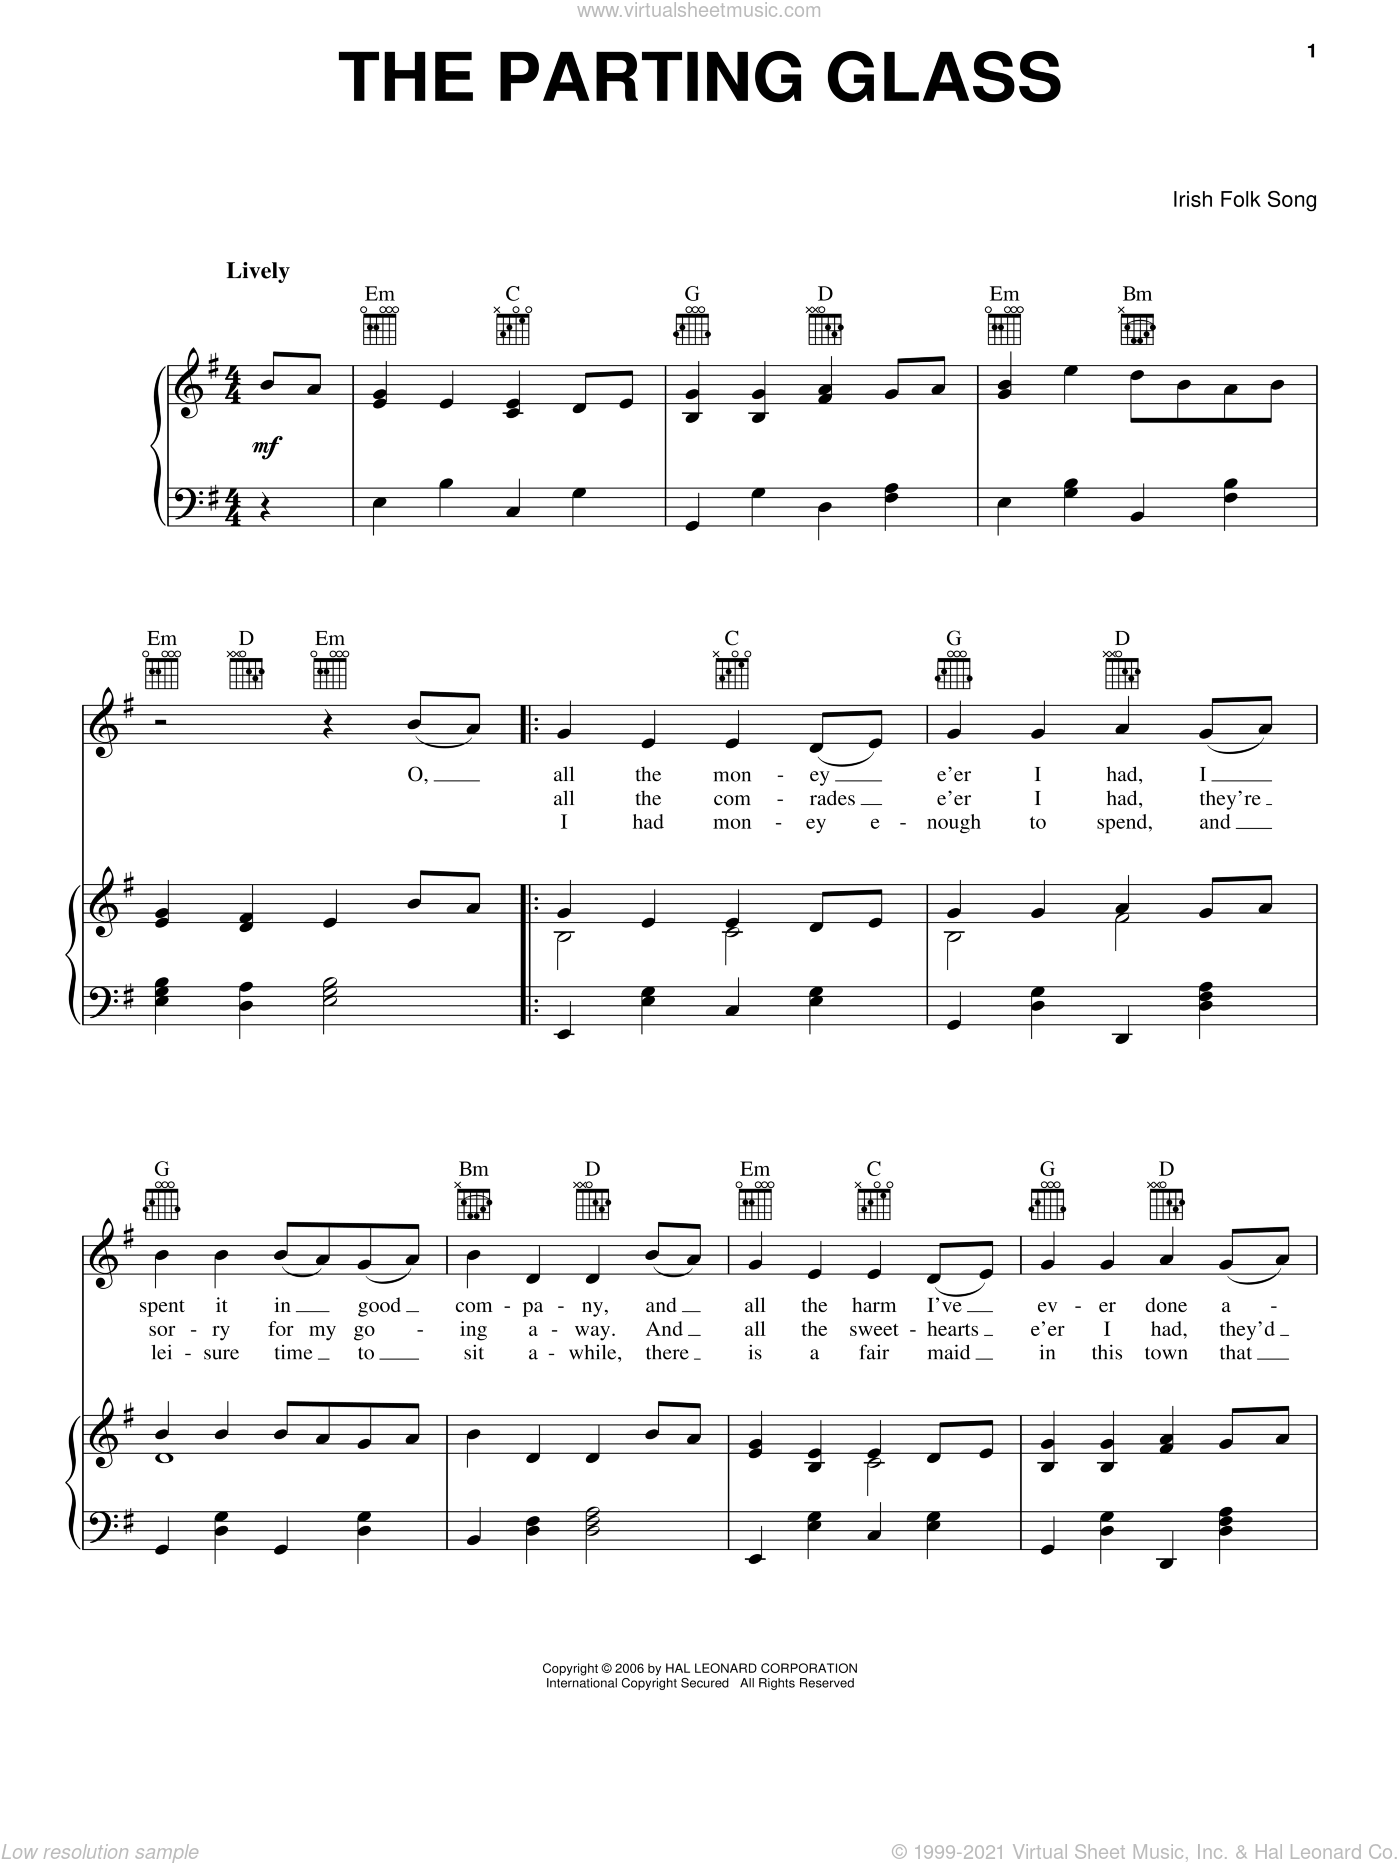 The Parting Glass sheet music for voice, piano or guitar, intermediate skill level